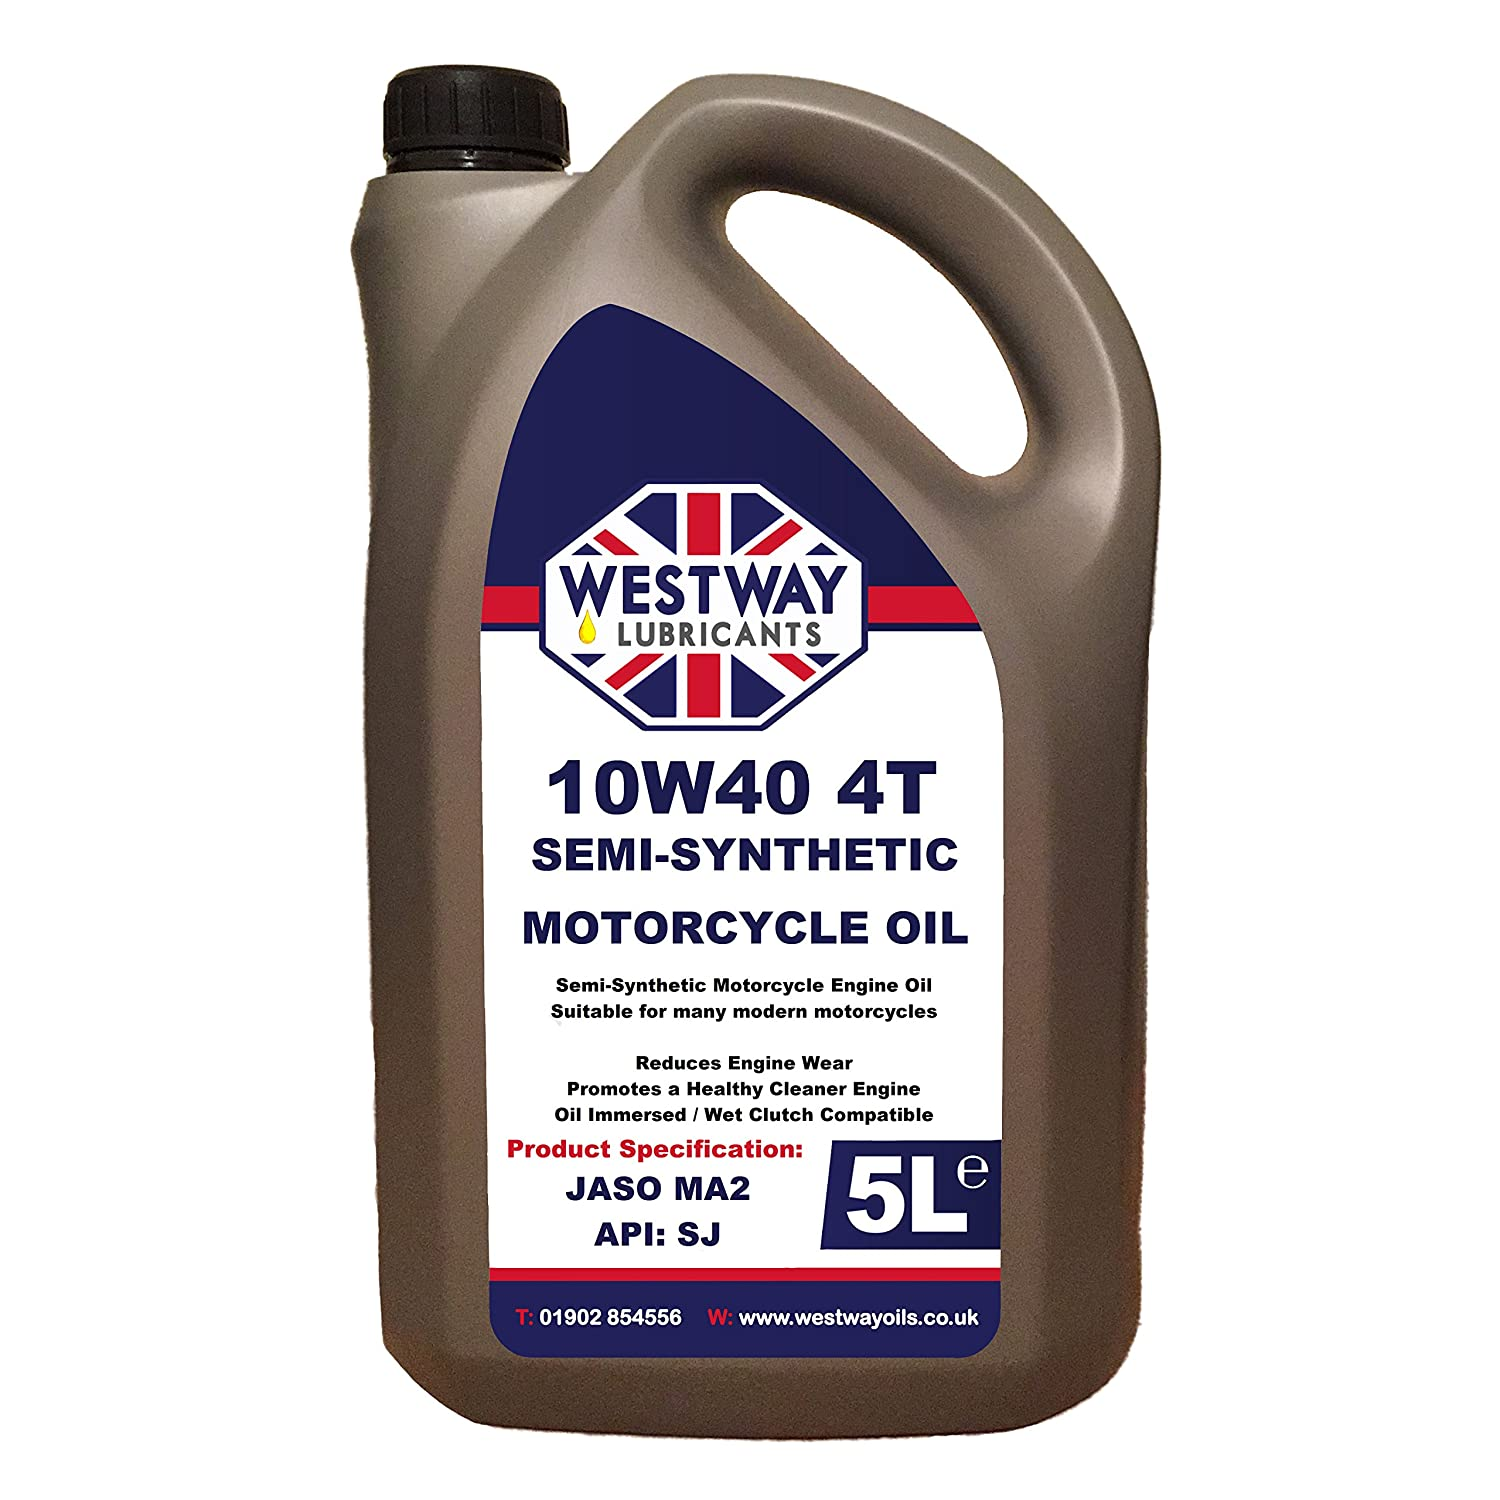 10w40 Motorcycle Oil Semi-Synthetic 5L 5 Litres Westway Lubricants